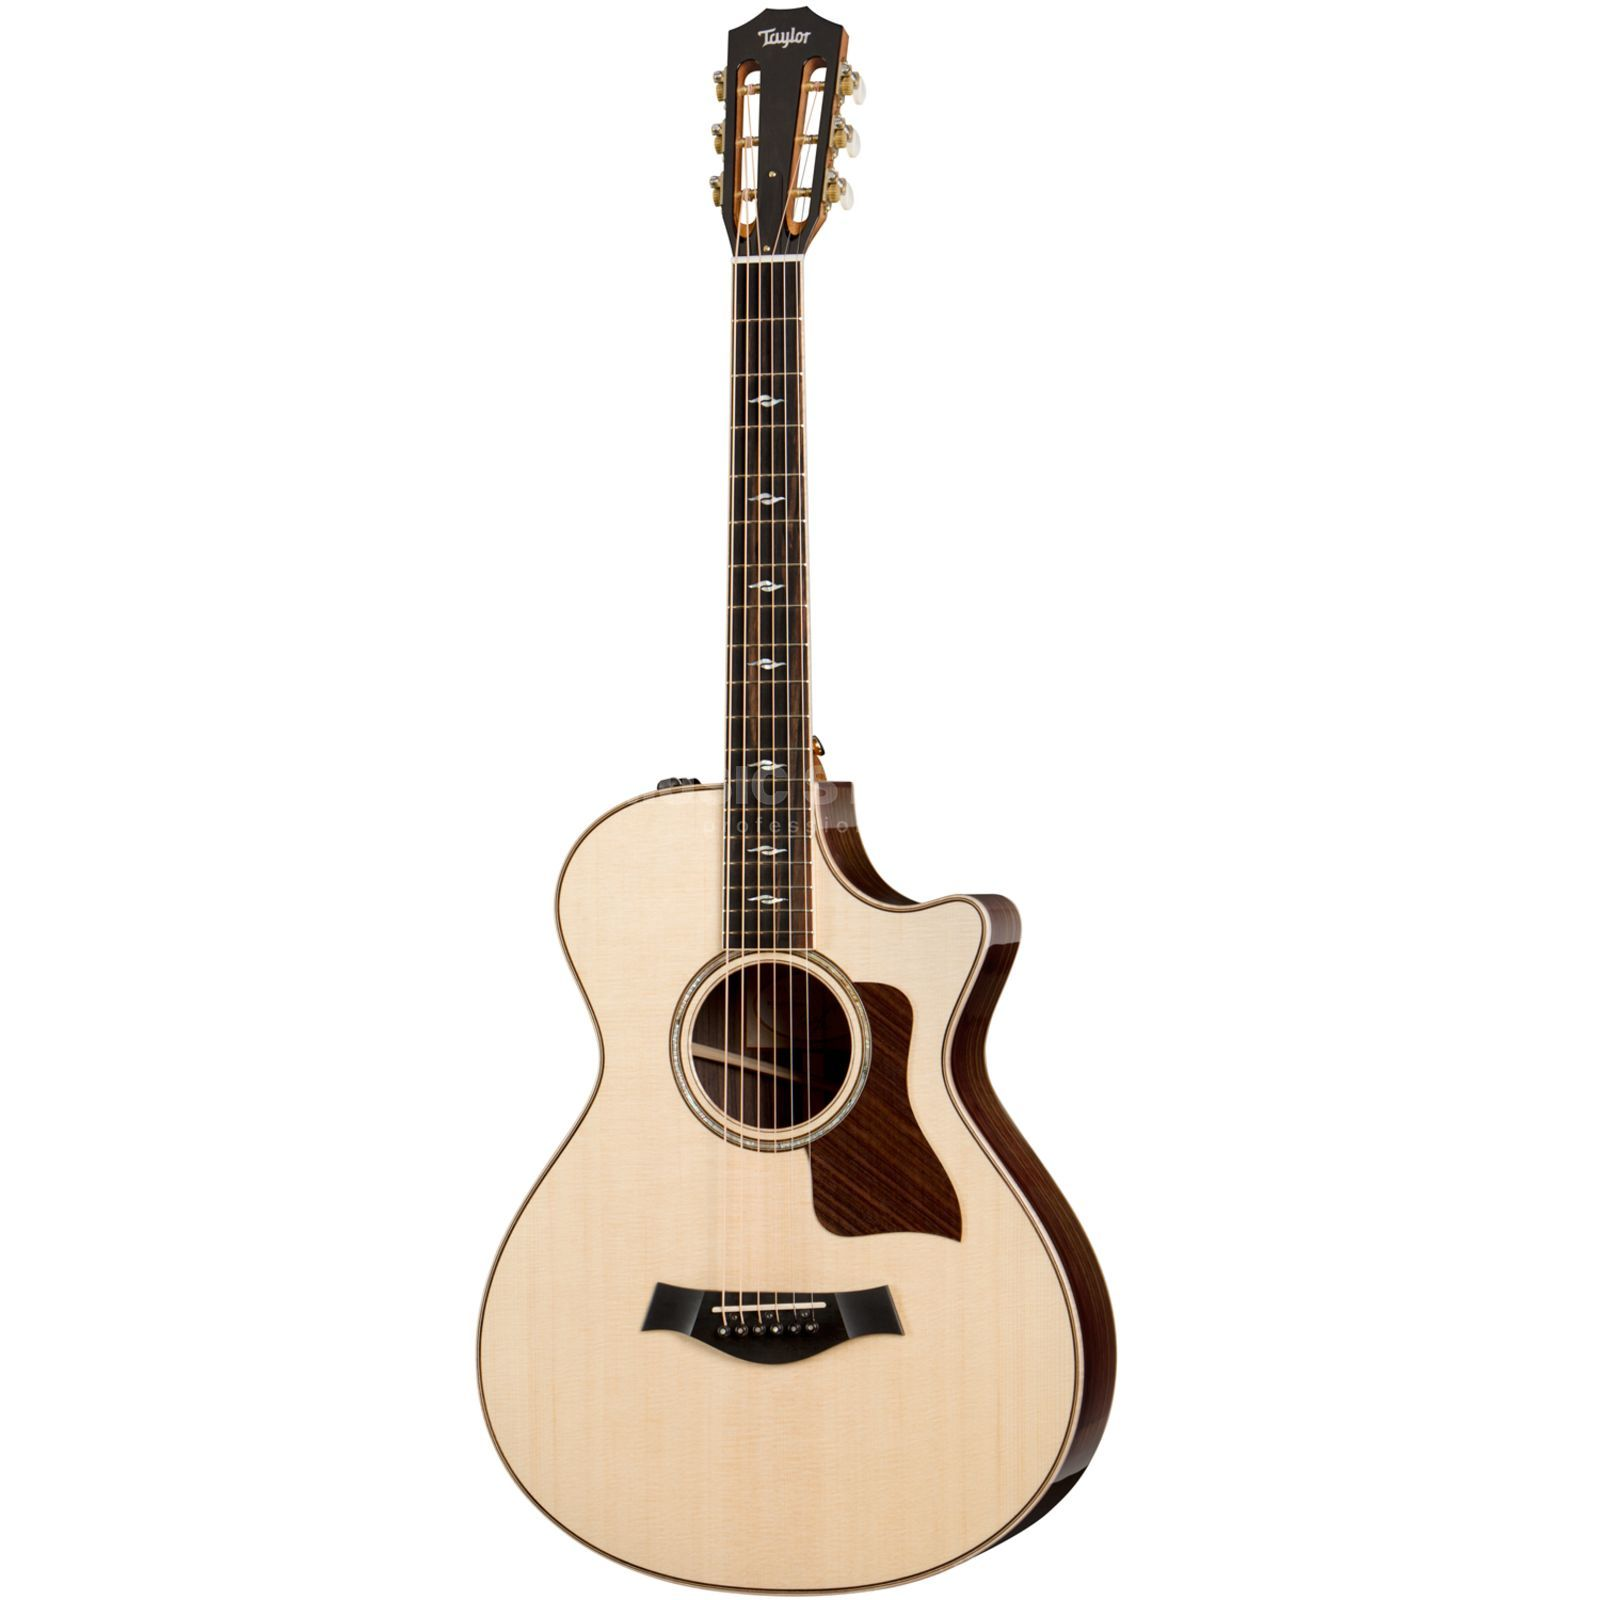 Taylor 812ce 12th fret Grand Concert Natural Produktbillede